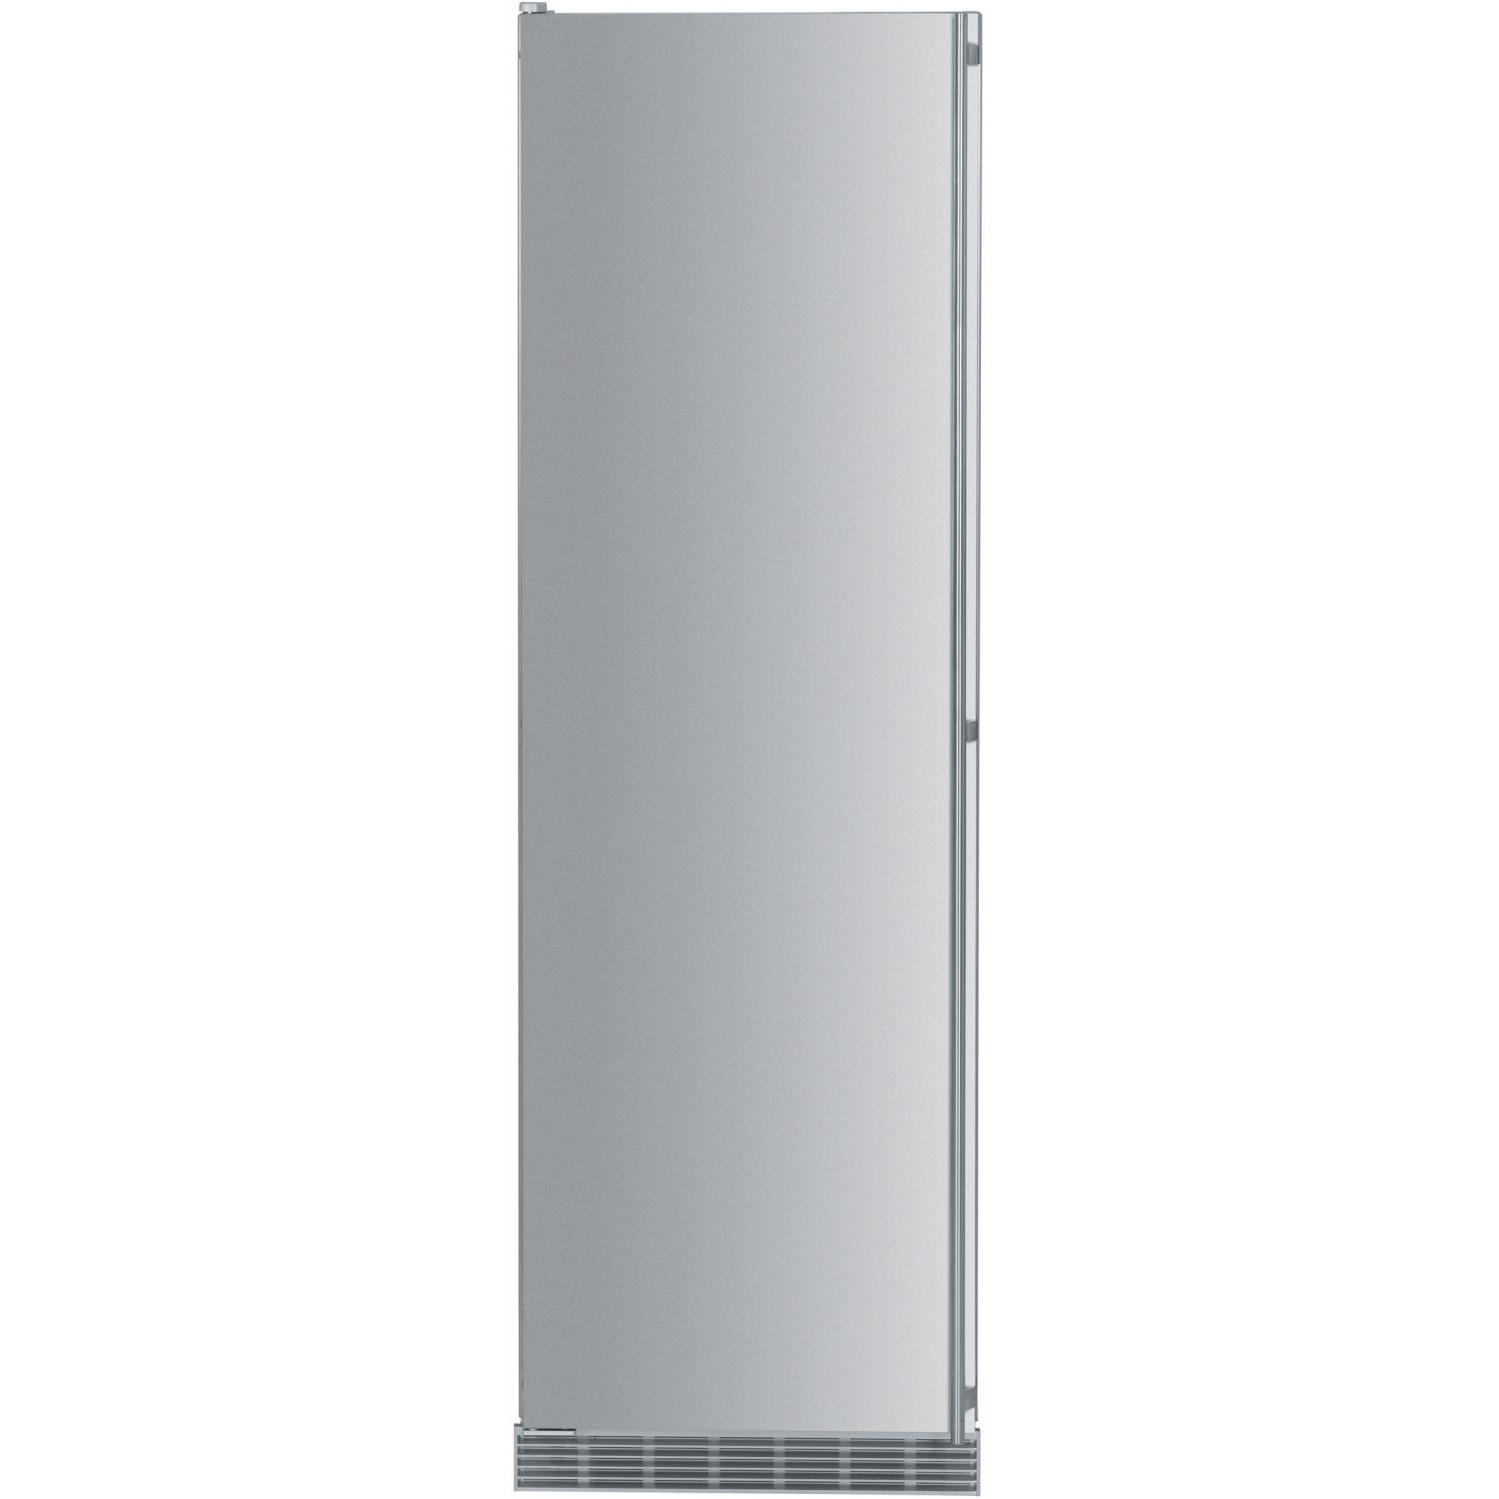 Liebherr F-1051 9.4 Cu. Ft. Capacity Built-In Freezer With Ice Maker - Stainless Steel